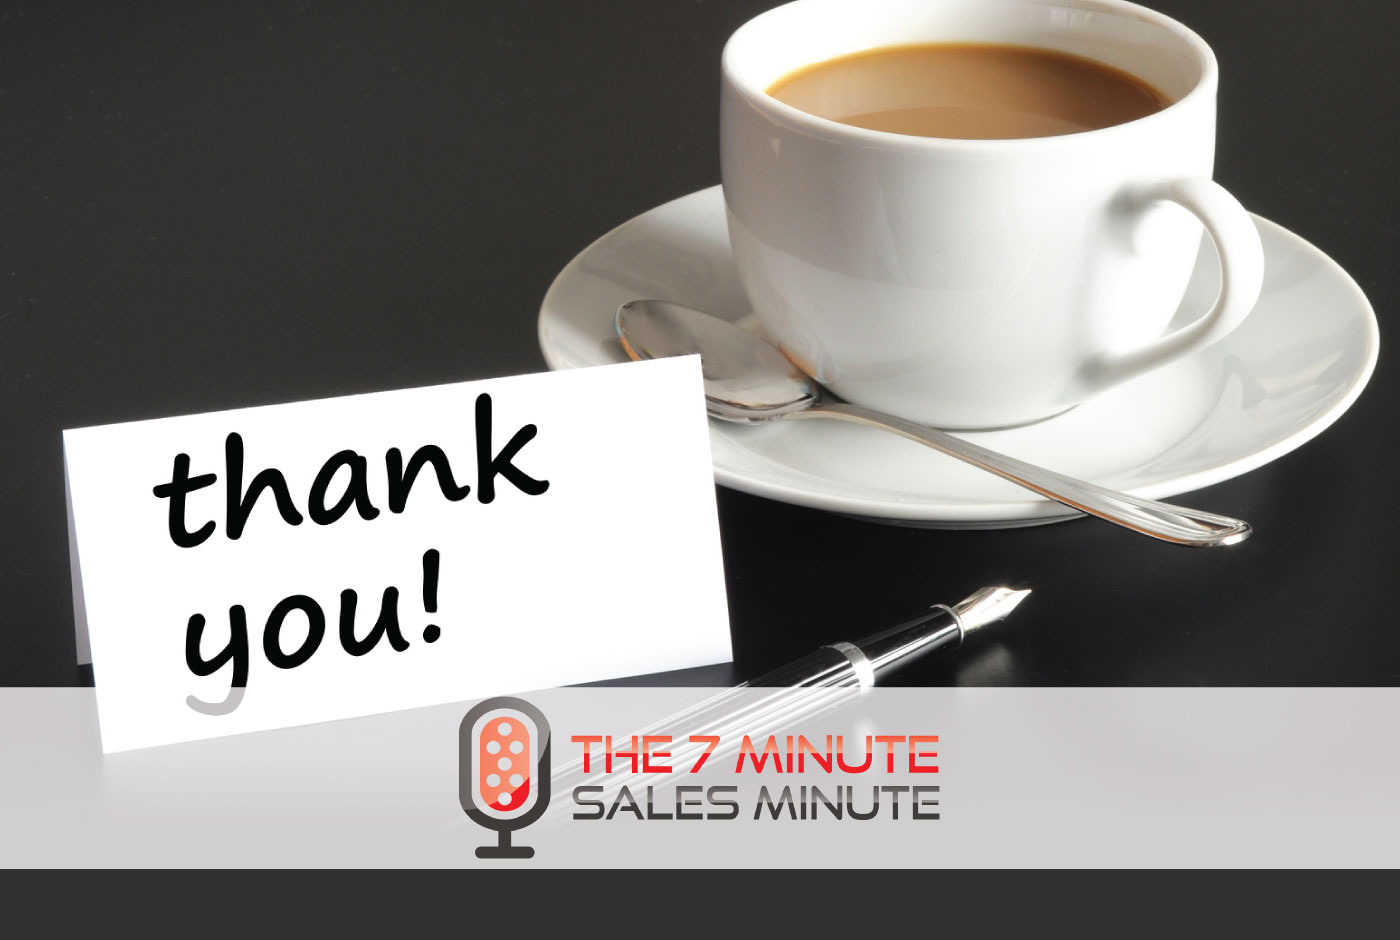 7 Minute Sales Minute Podcast - Season 13 - Episode 18 - Tank You Veddy Much